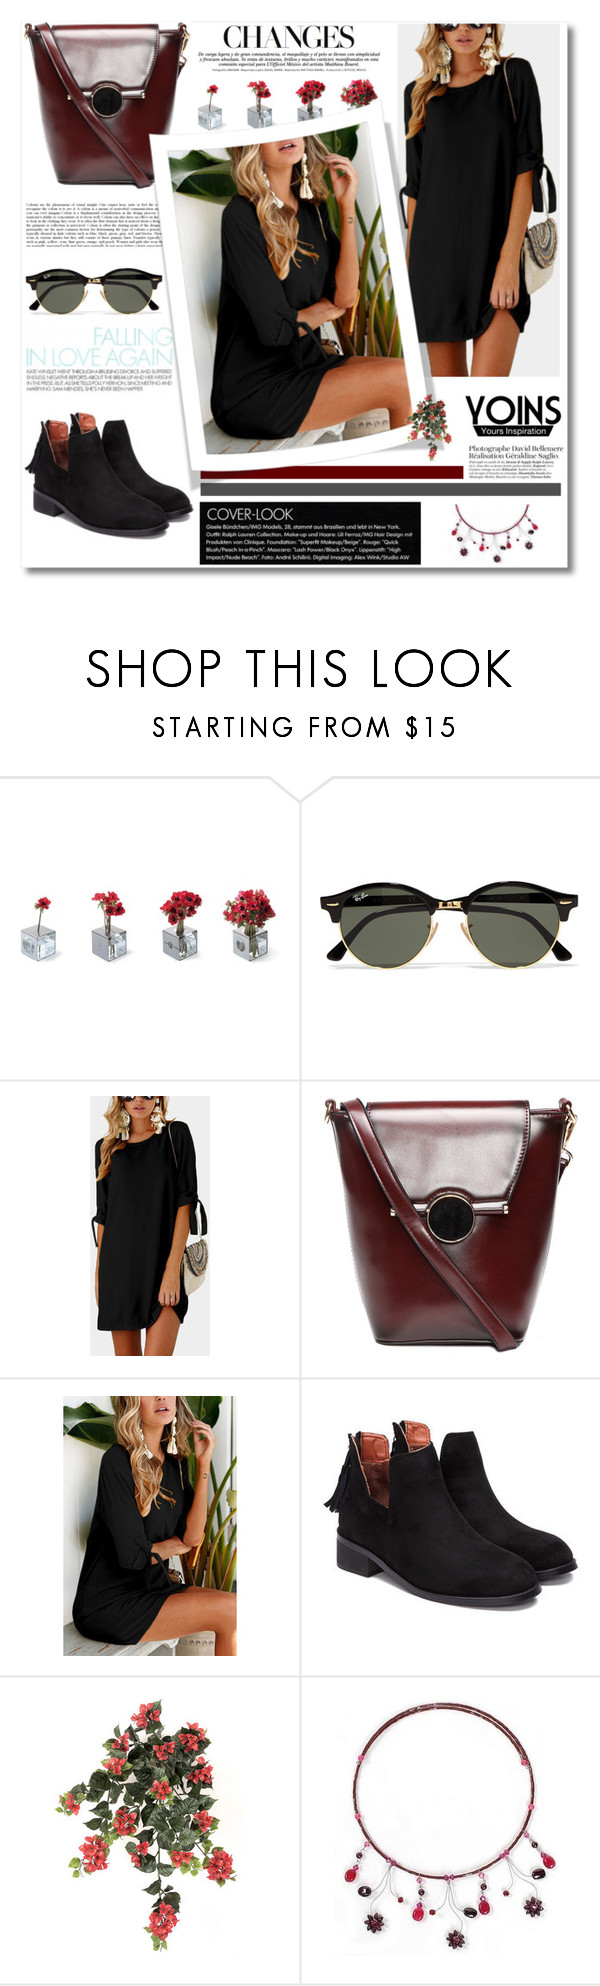 """Yoins 140"" by zulaltprk ❤ liked on Polyvore featuring Konstantin Slawinski, Ray-Ban, NOVICA, yoins, yoinscollection and loveyoins"